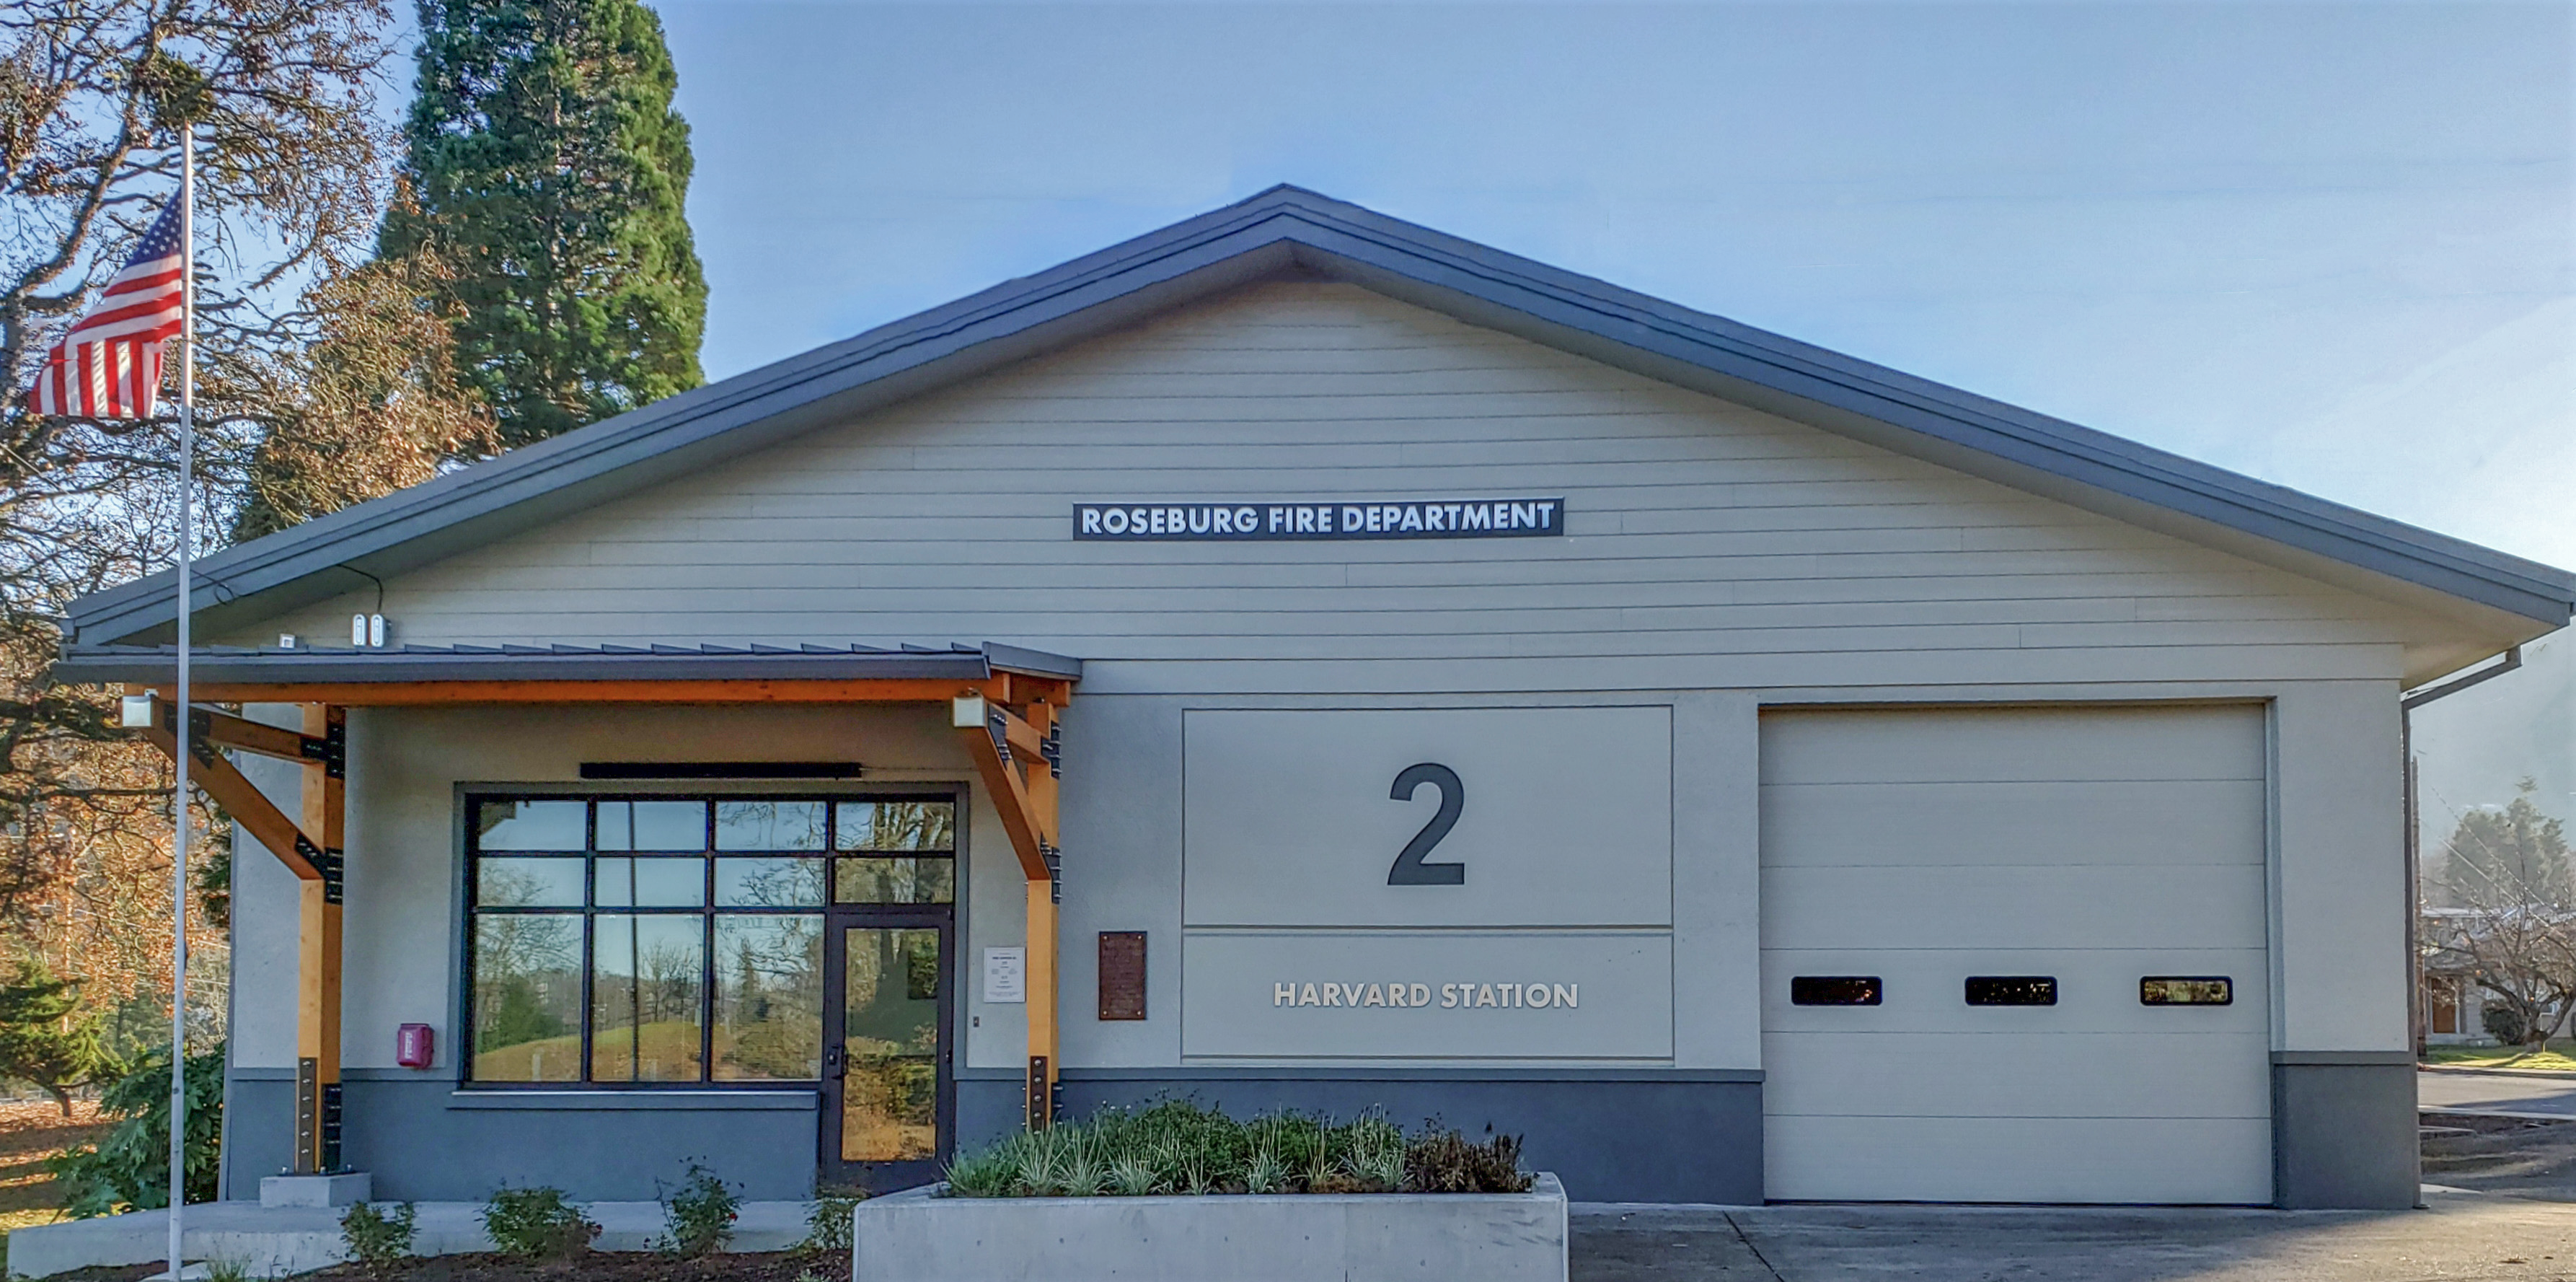 Station 2 Temporary Closure - 9-17-21 (Photo) featured image